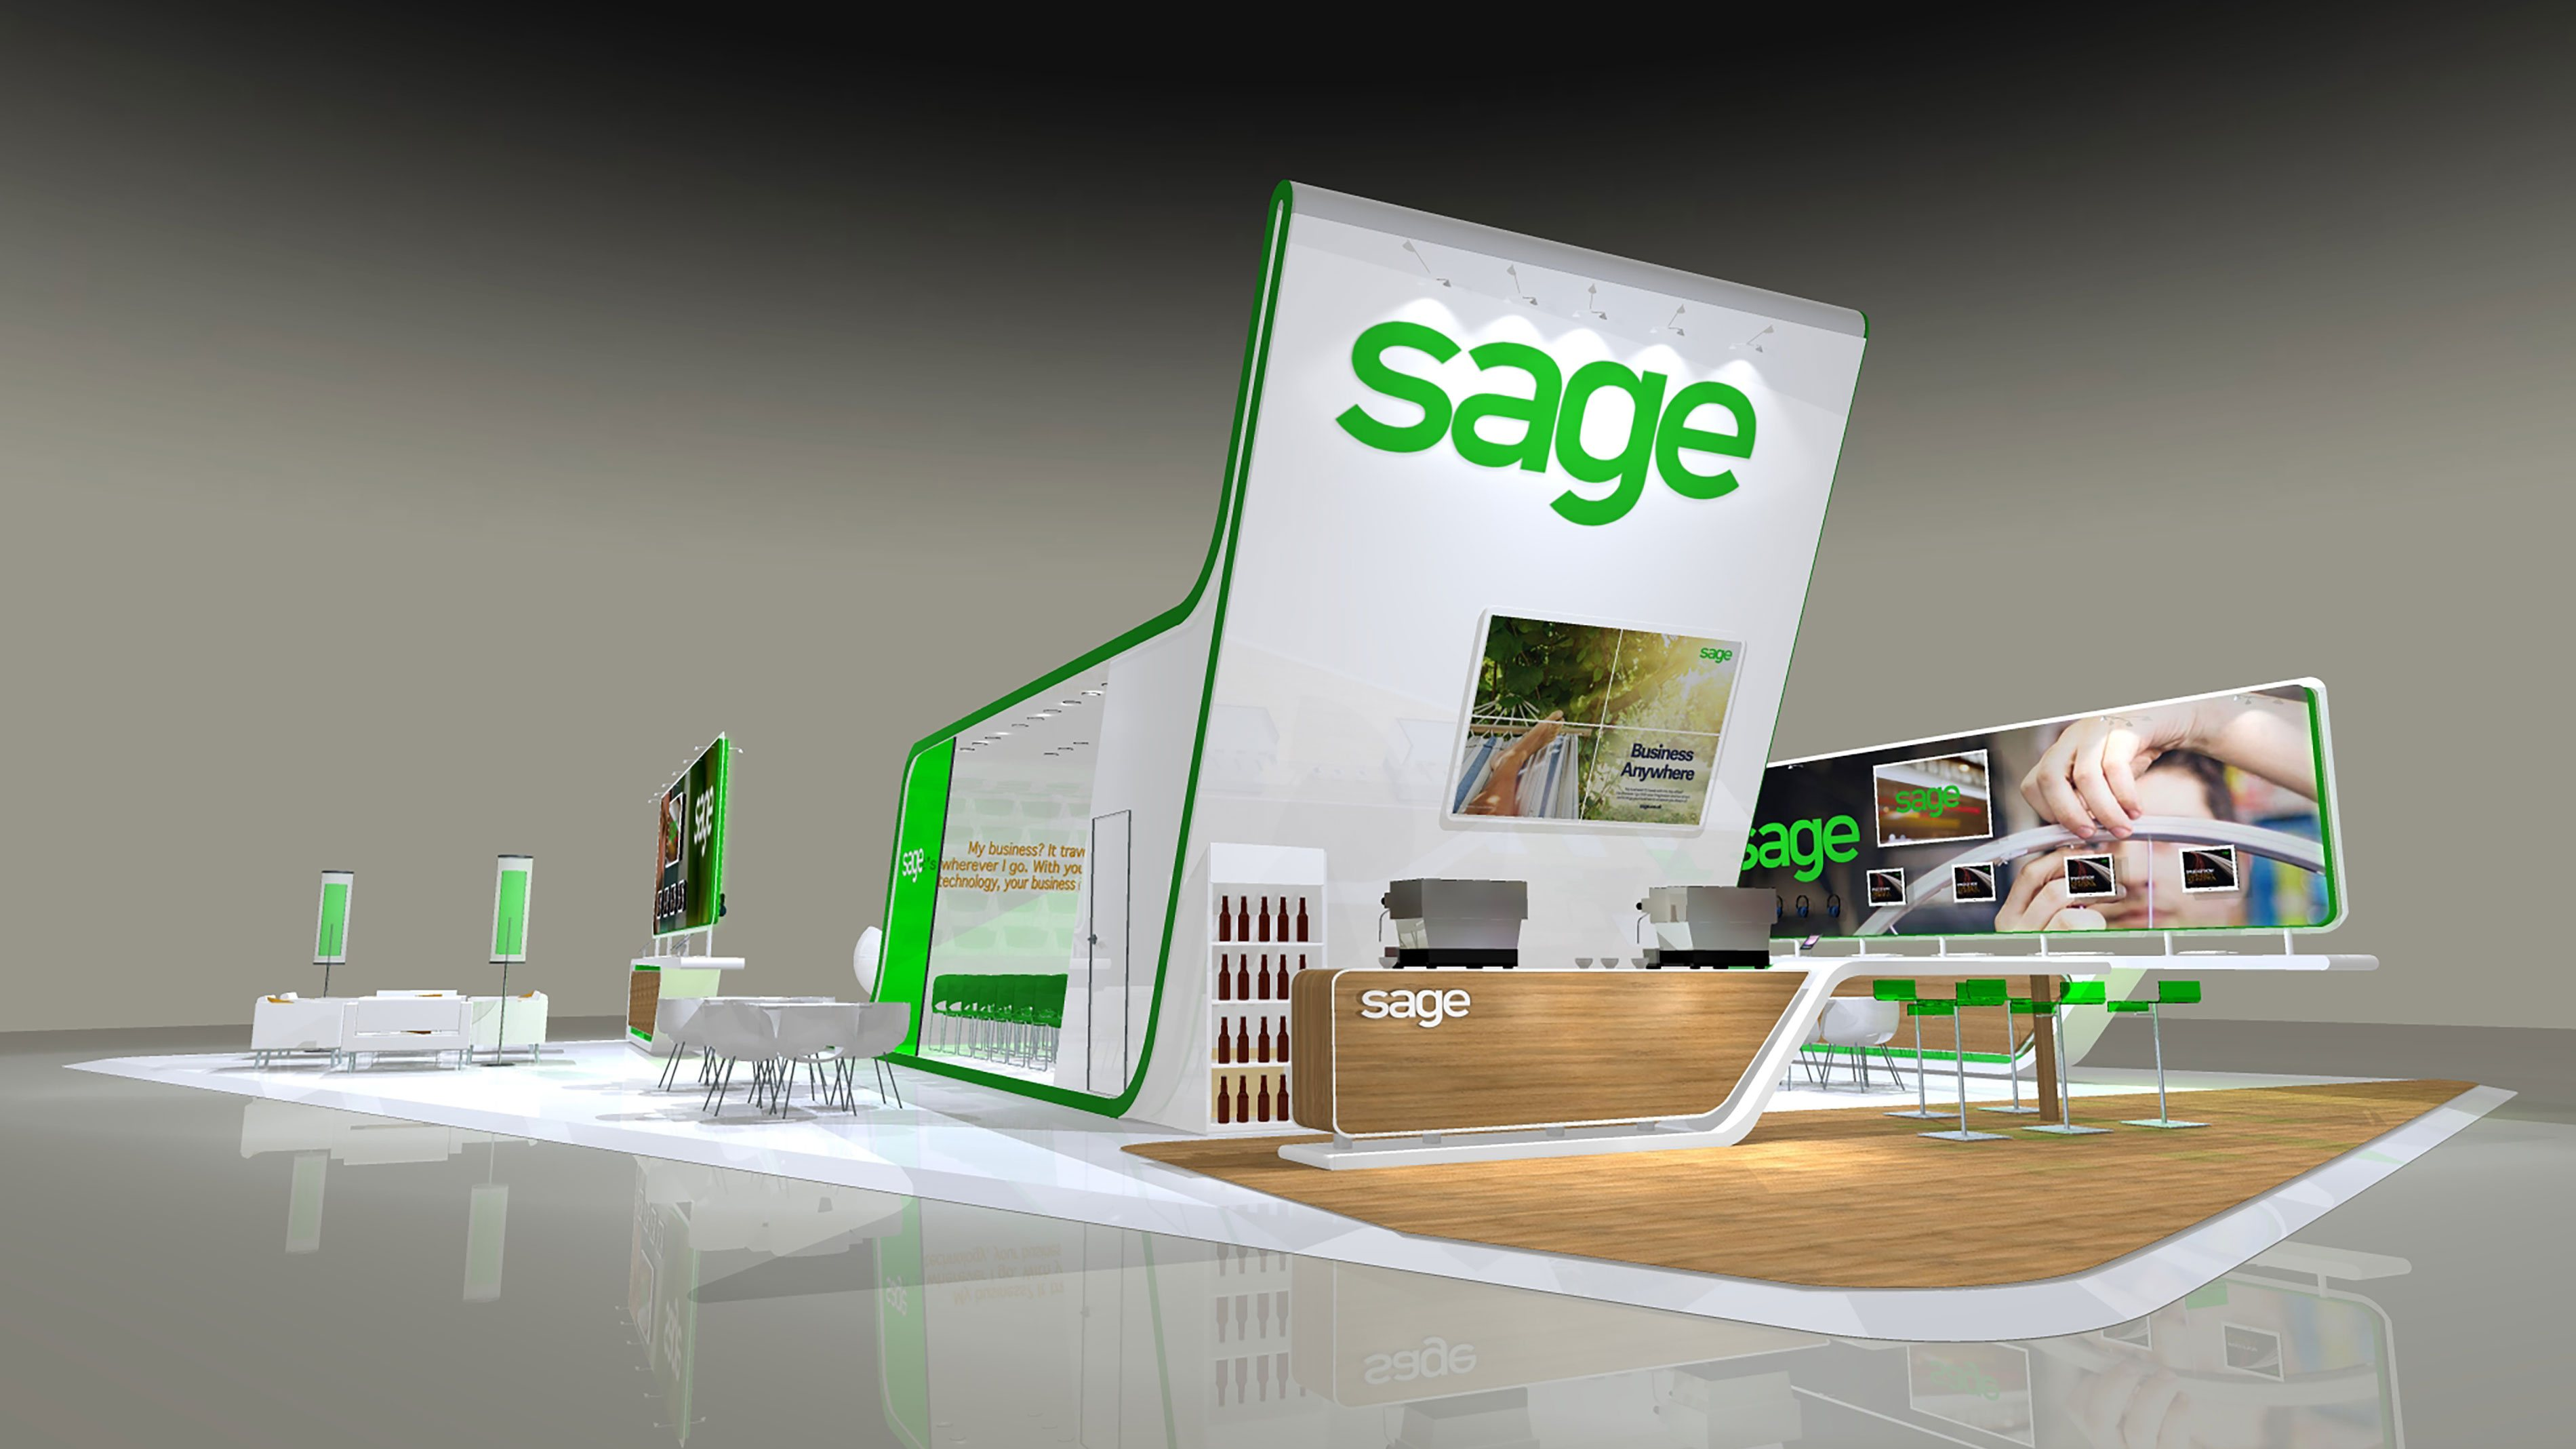 Exhibition Stand Design Companies Uk : Parker design consultants creative agency london